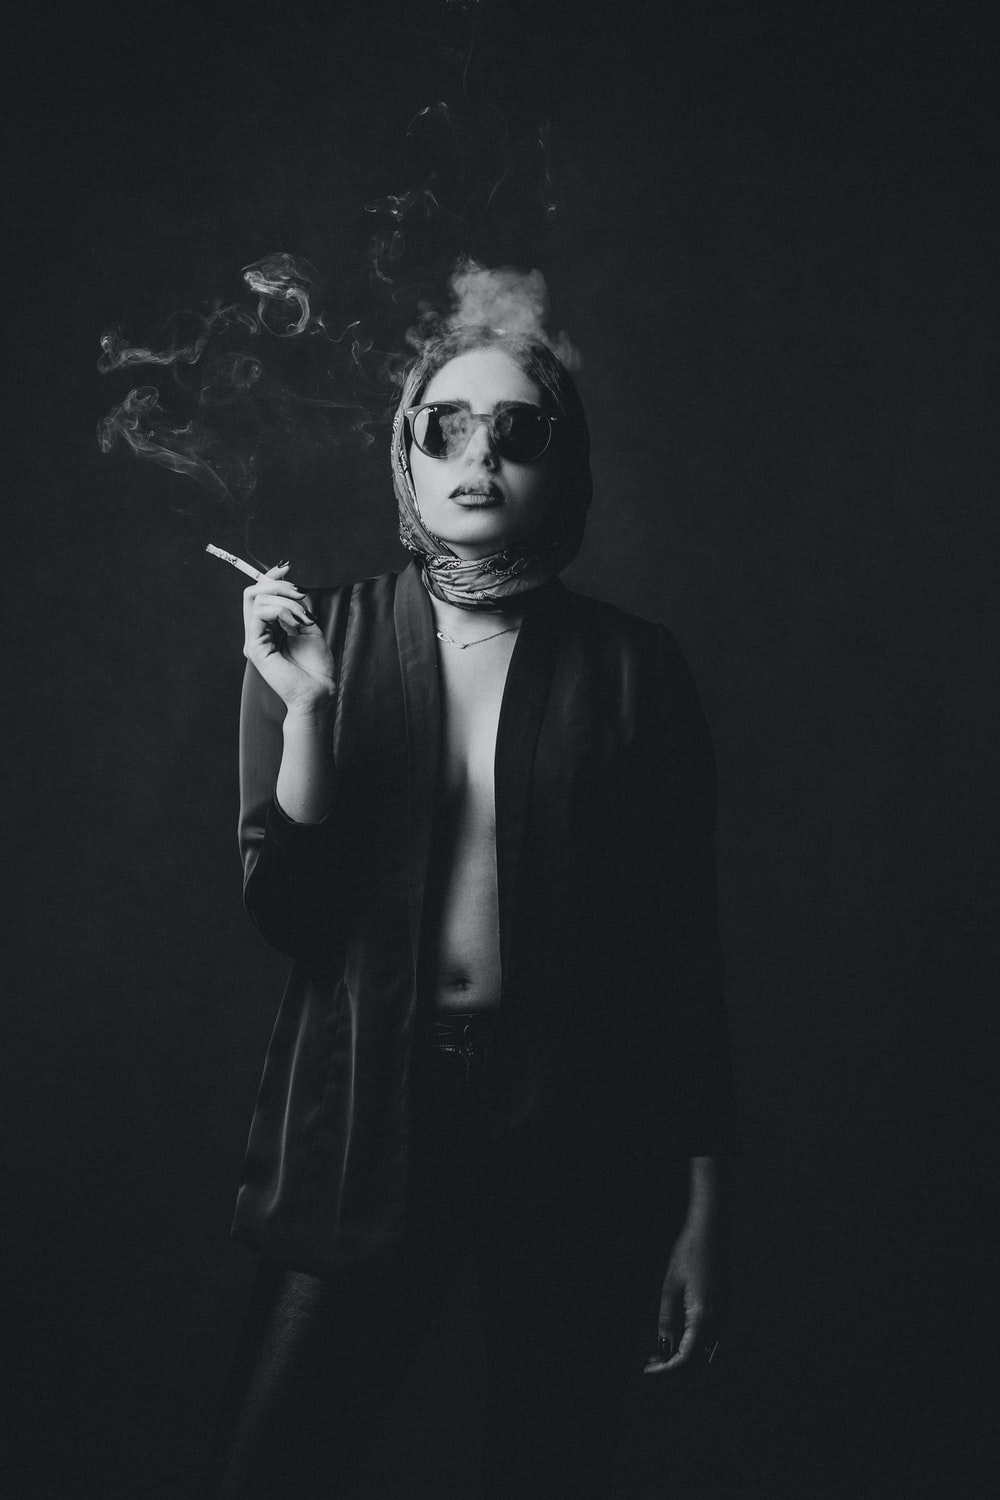 woman in black blazer and white face mask